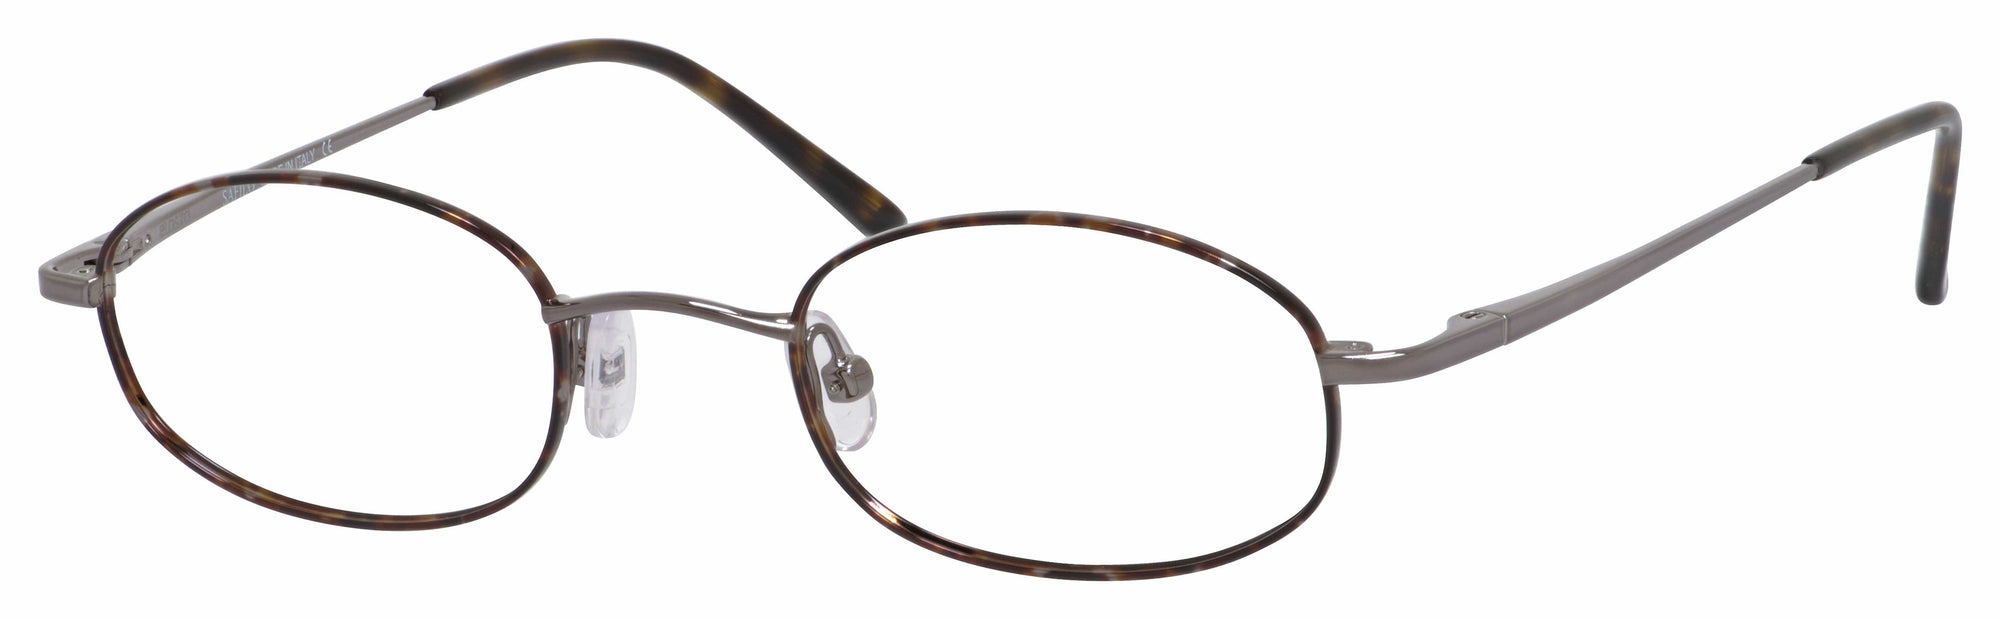 Safilo Team Team 4119 Oval Eyeglasses